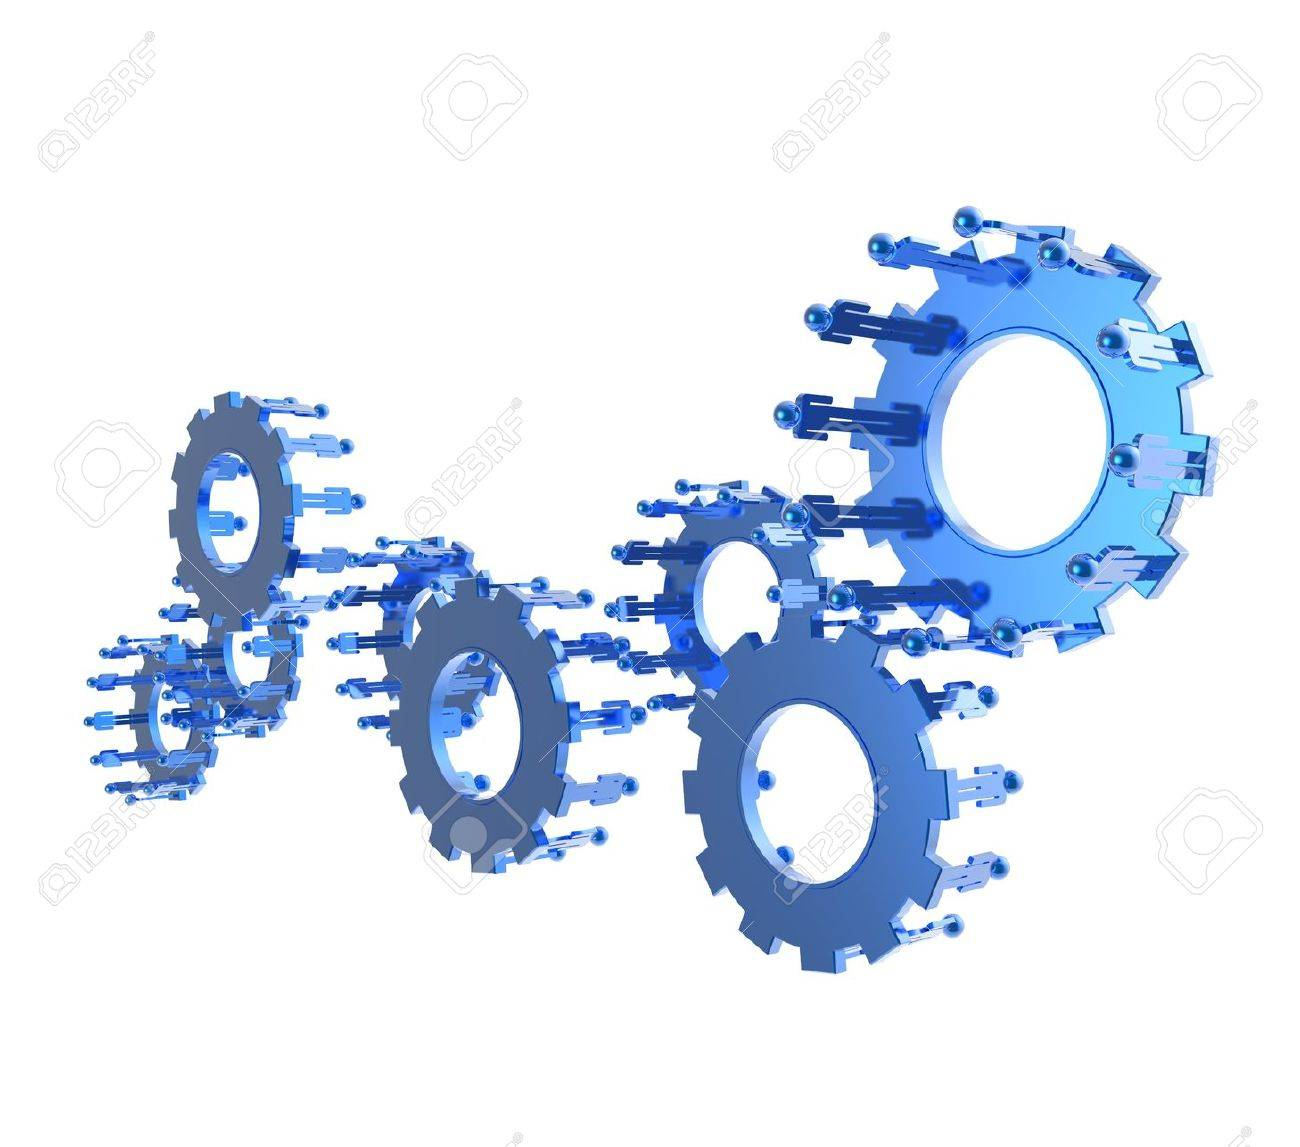 Model of 3d figures on connected cogs as industry concept Stock Photo - 16712943